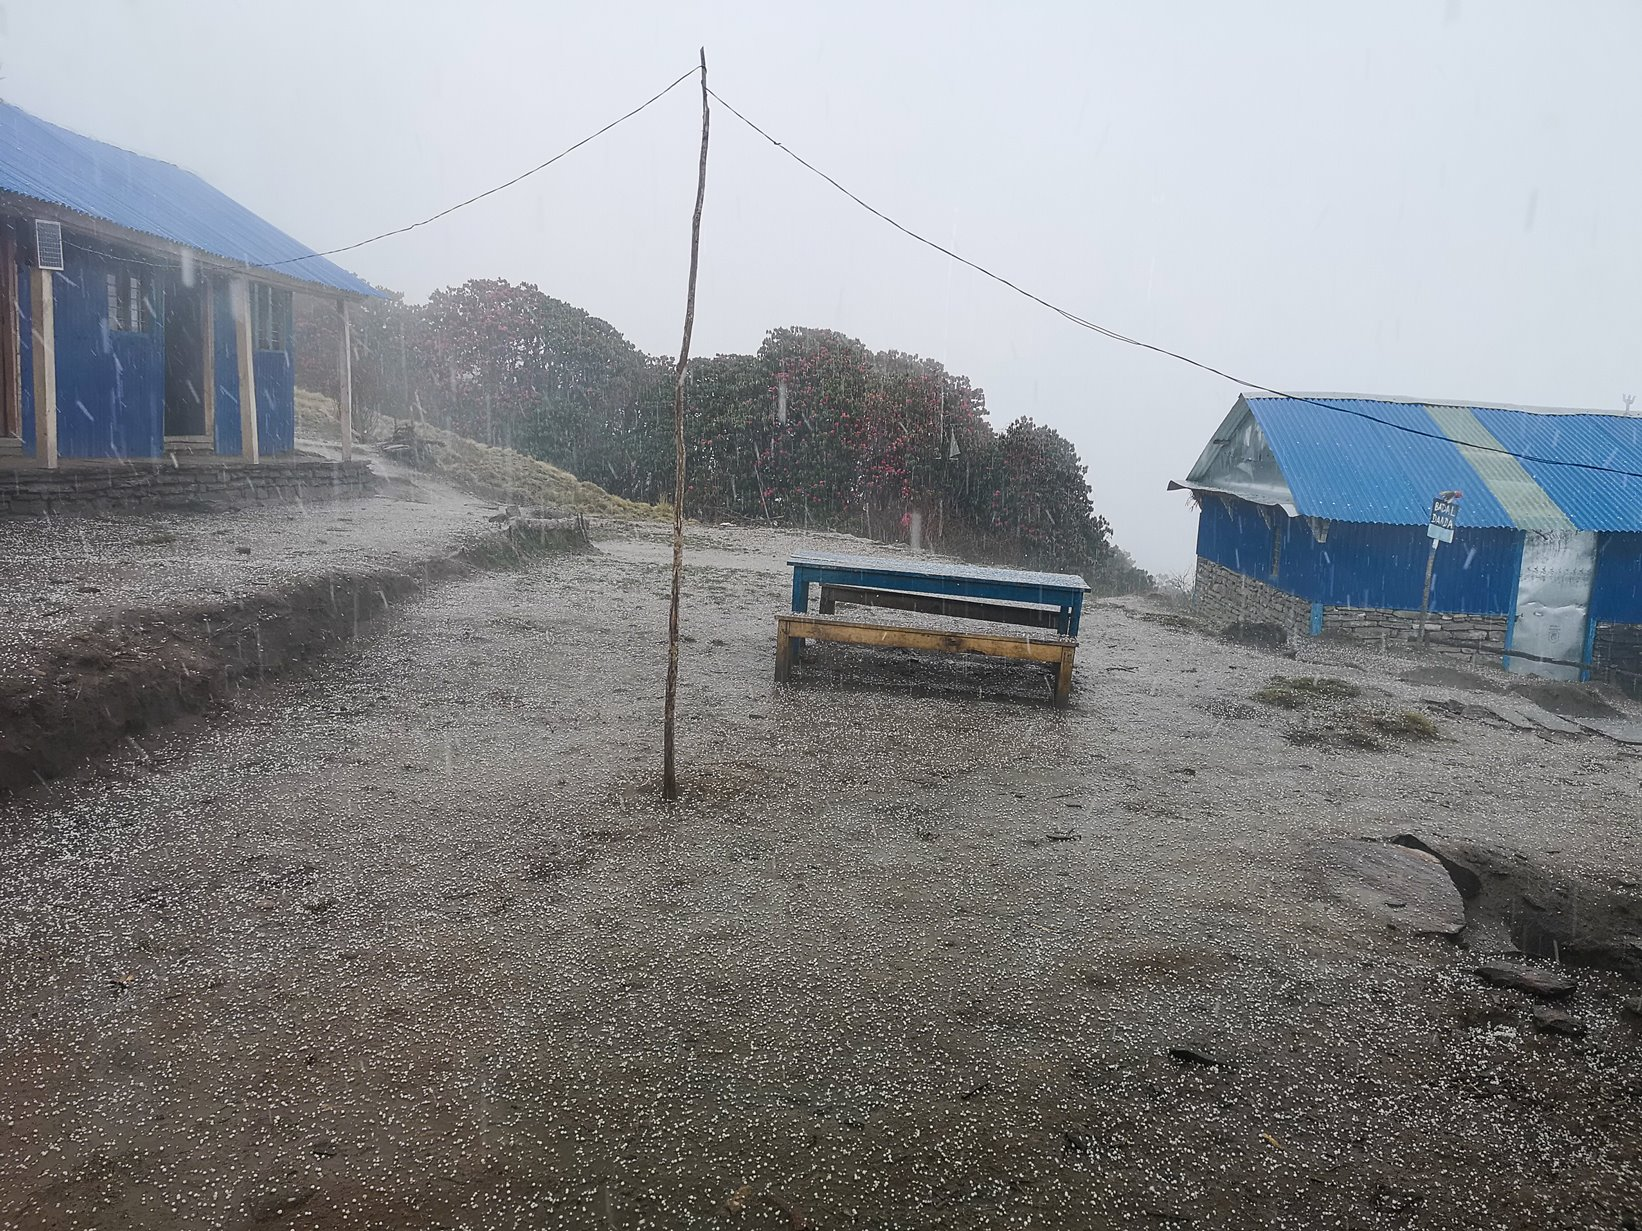 When it rains in Nepal it rains like this...